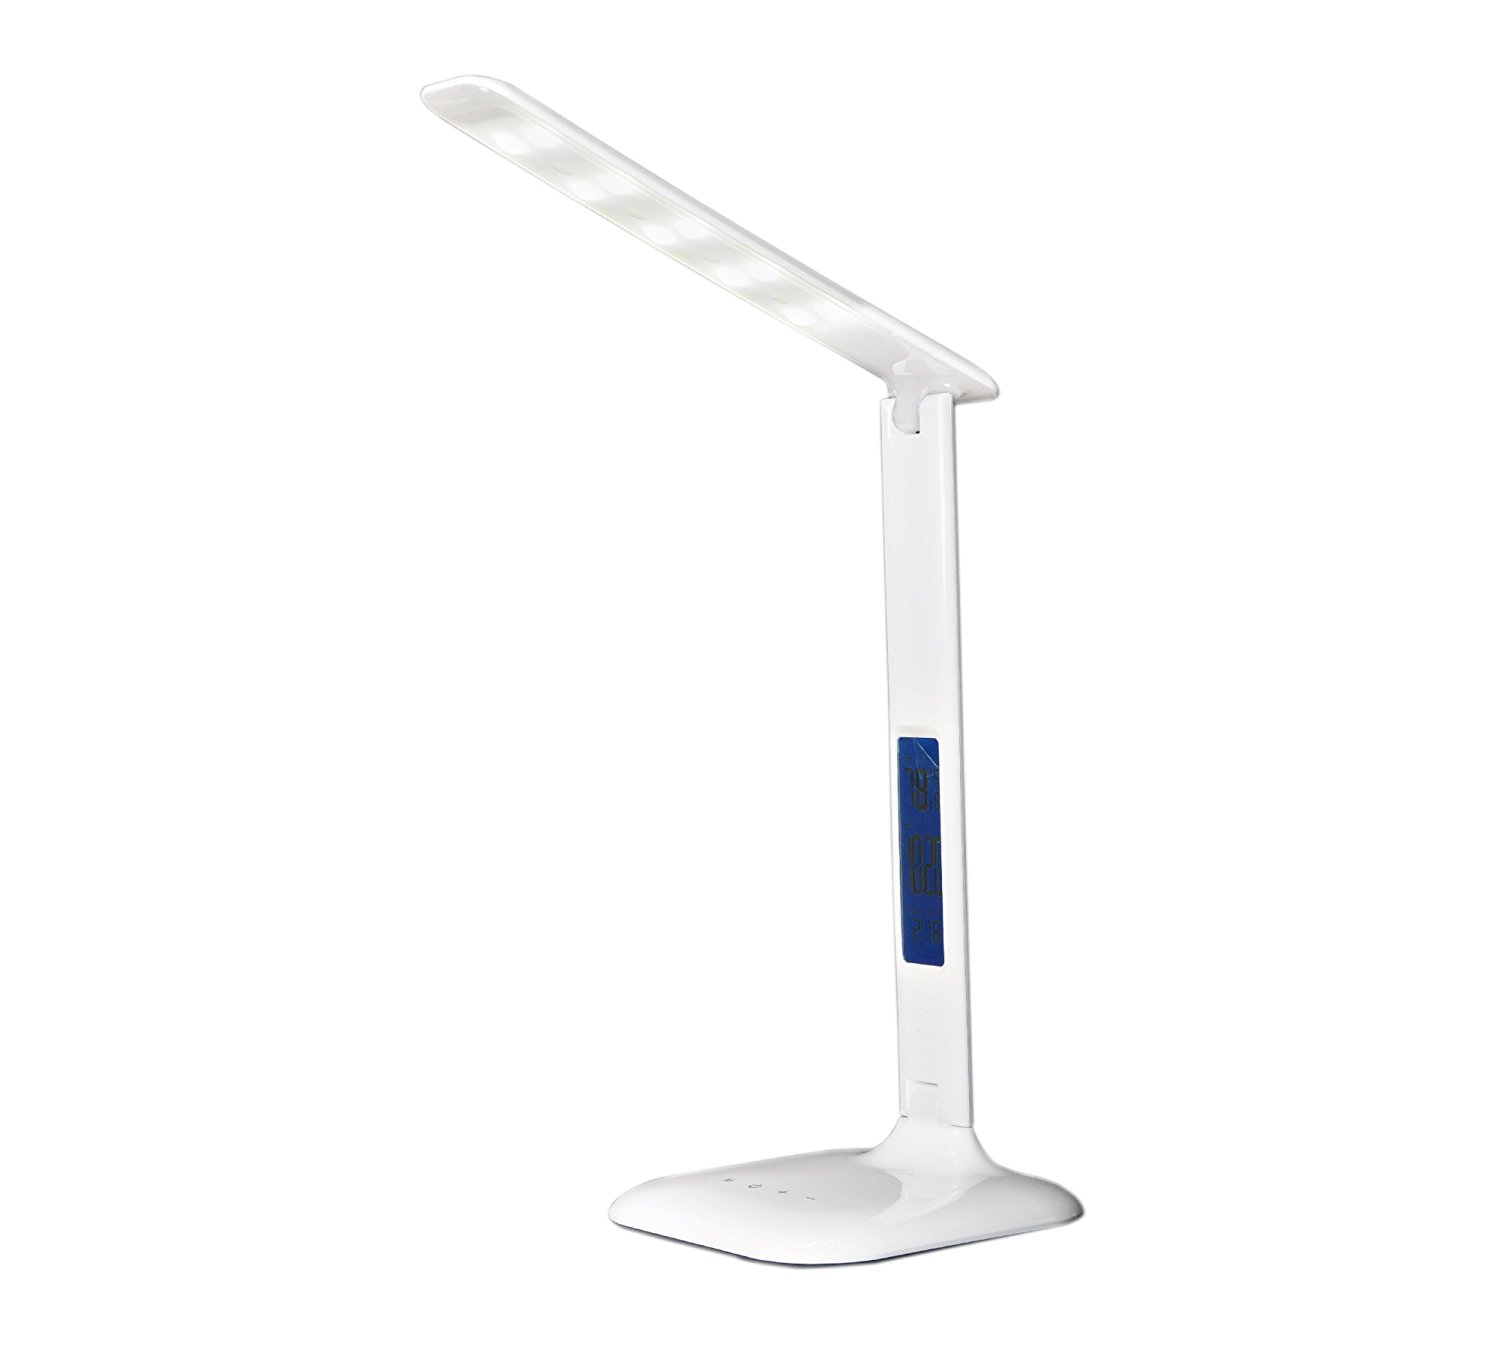 2017New LED Desk Lamp,Table Lamp For Office Reading,5-Levels Touch Dimmable Desk Lamp With LCD Screen, Eye-Care Table Lamp,Flexible Portable Lamp